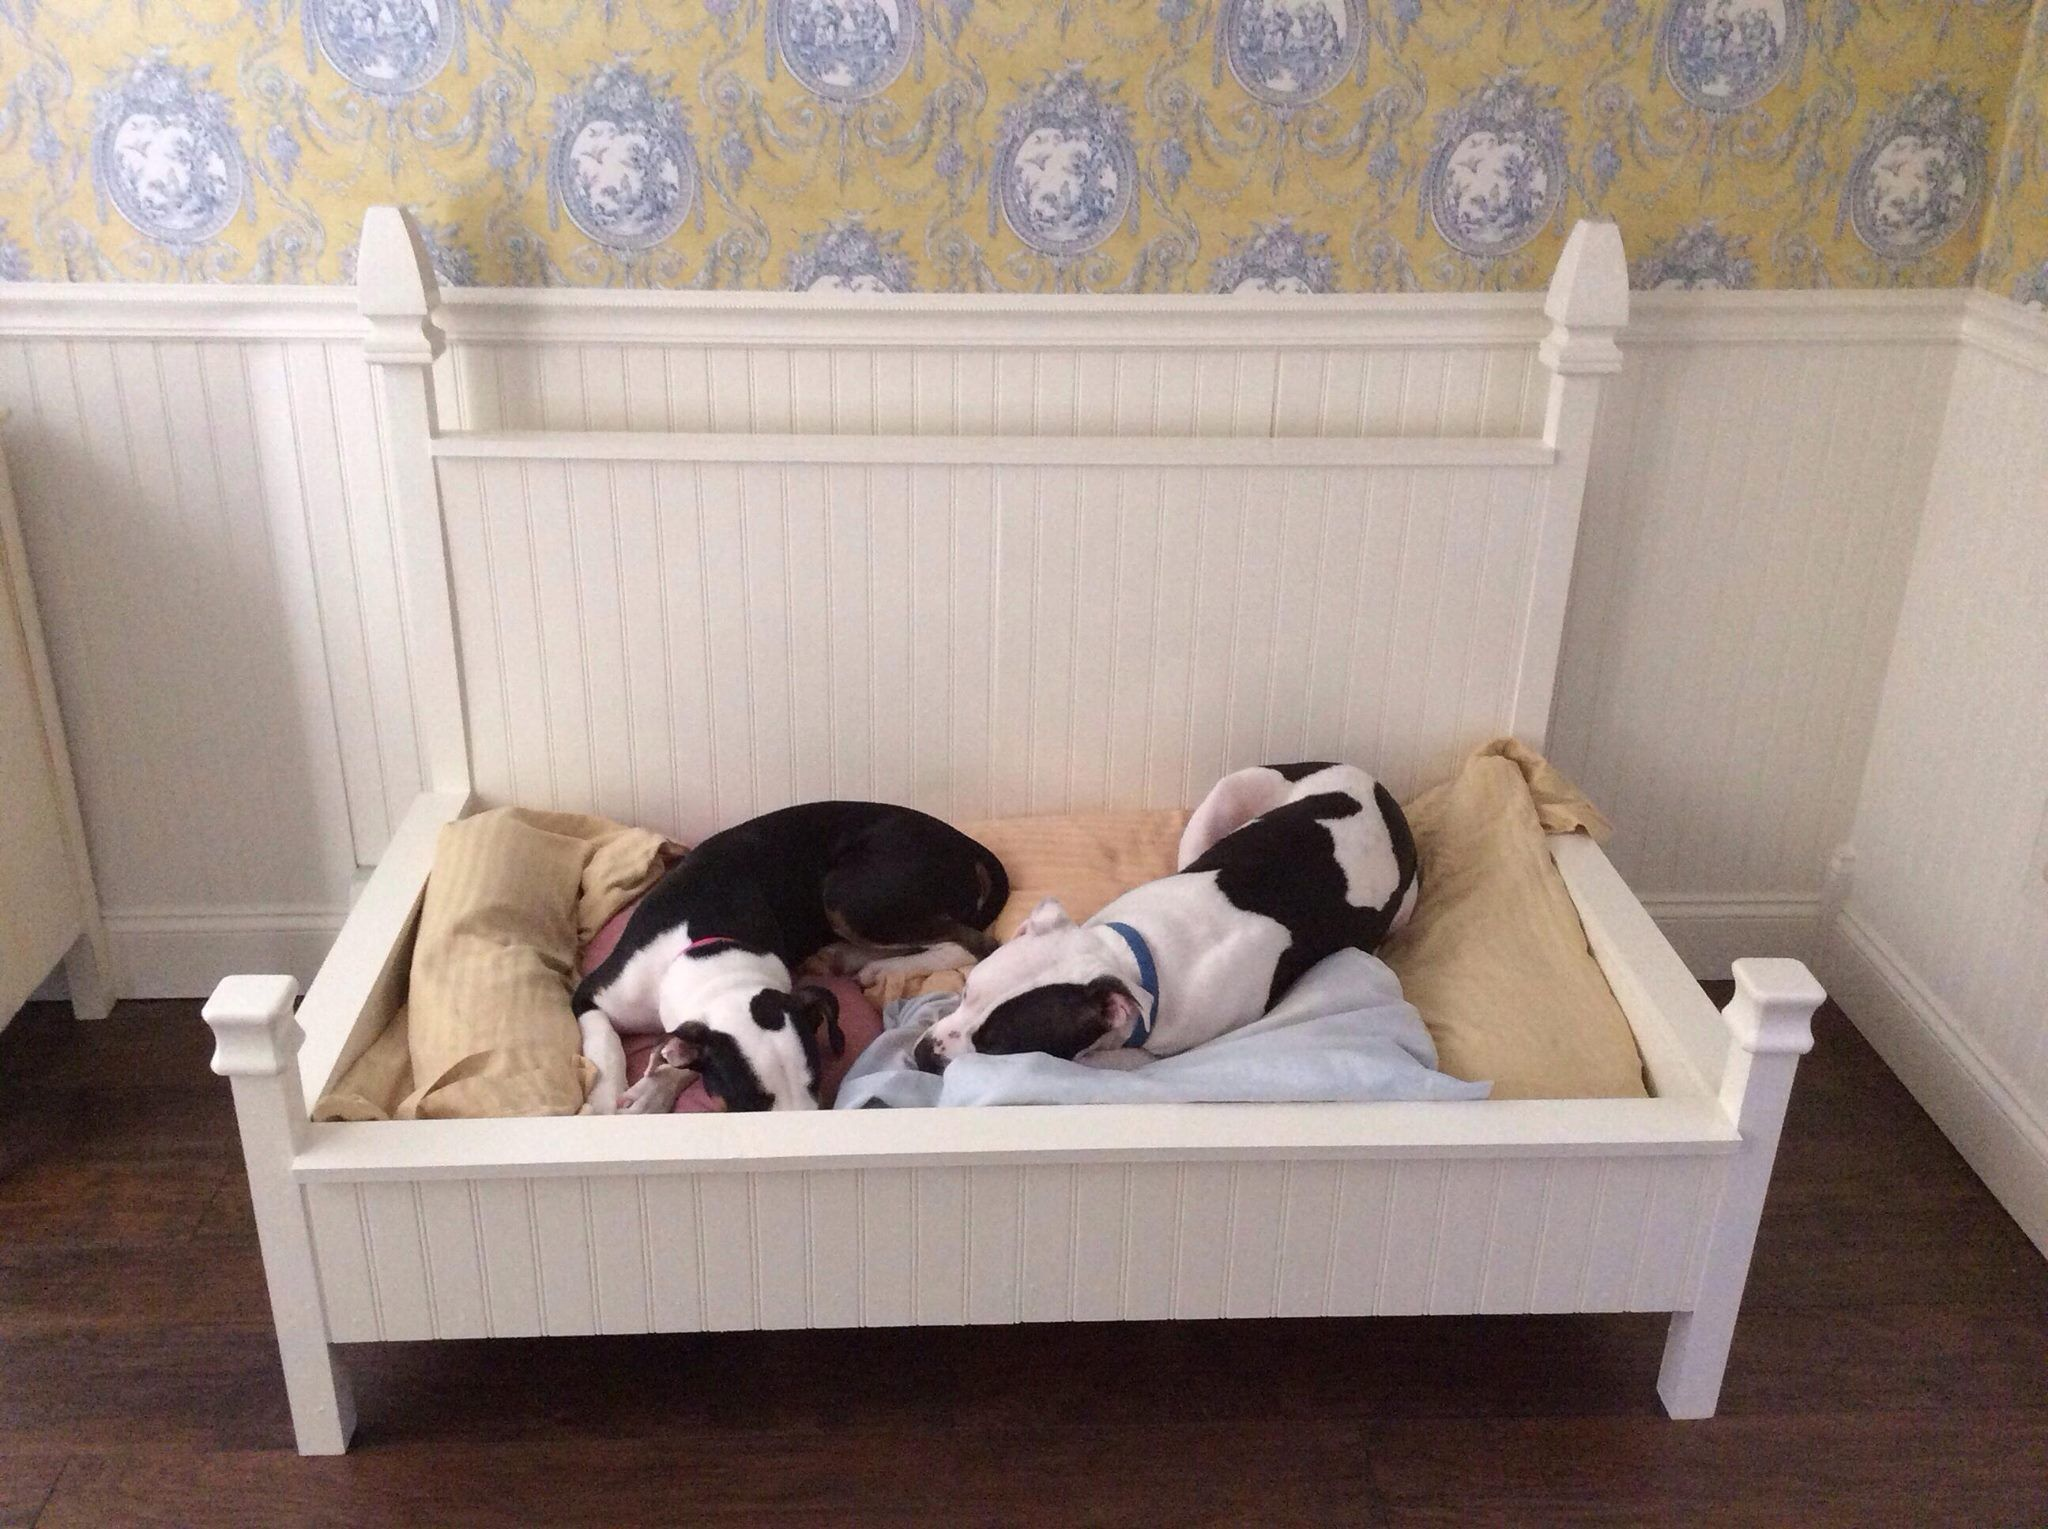 Baby cribs regulations canada - Four Poster Dog Bed Built To Hold A Baby Crib Mattress